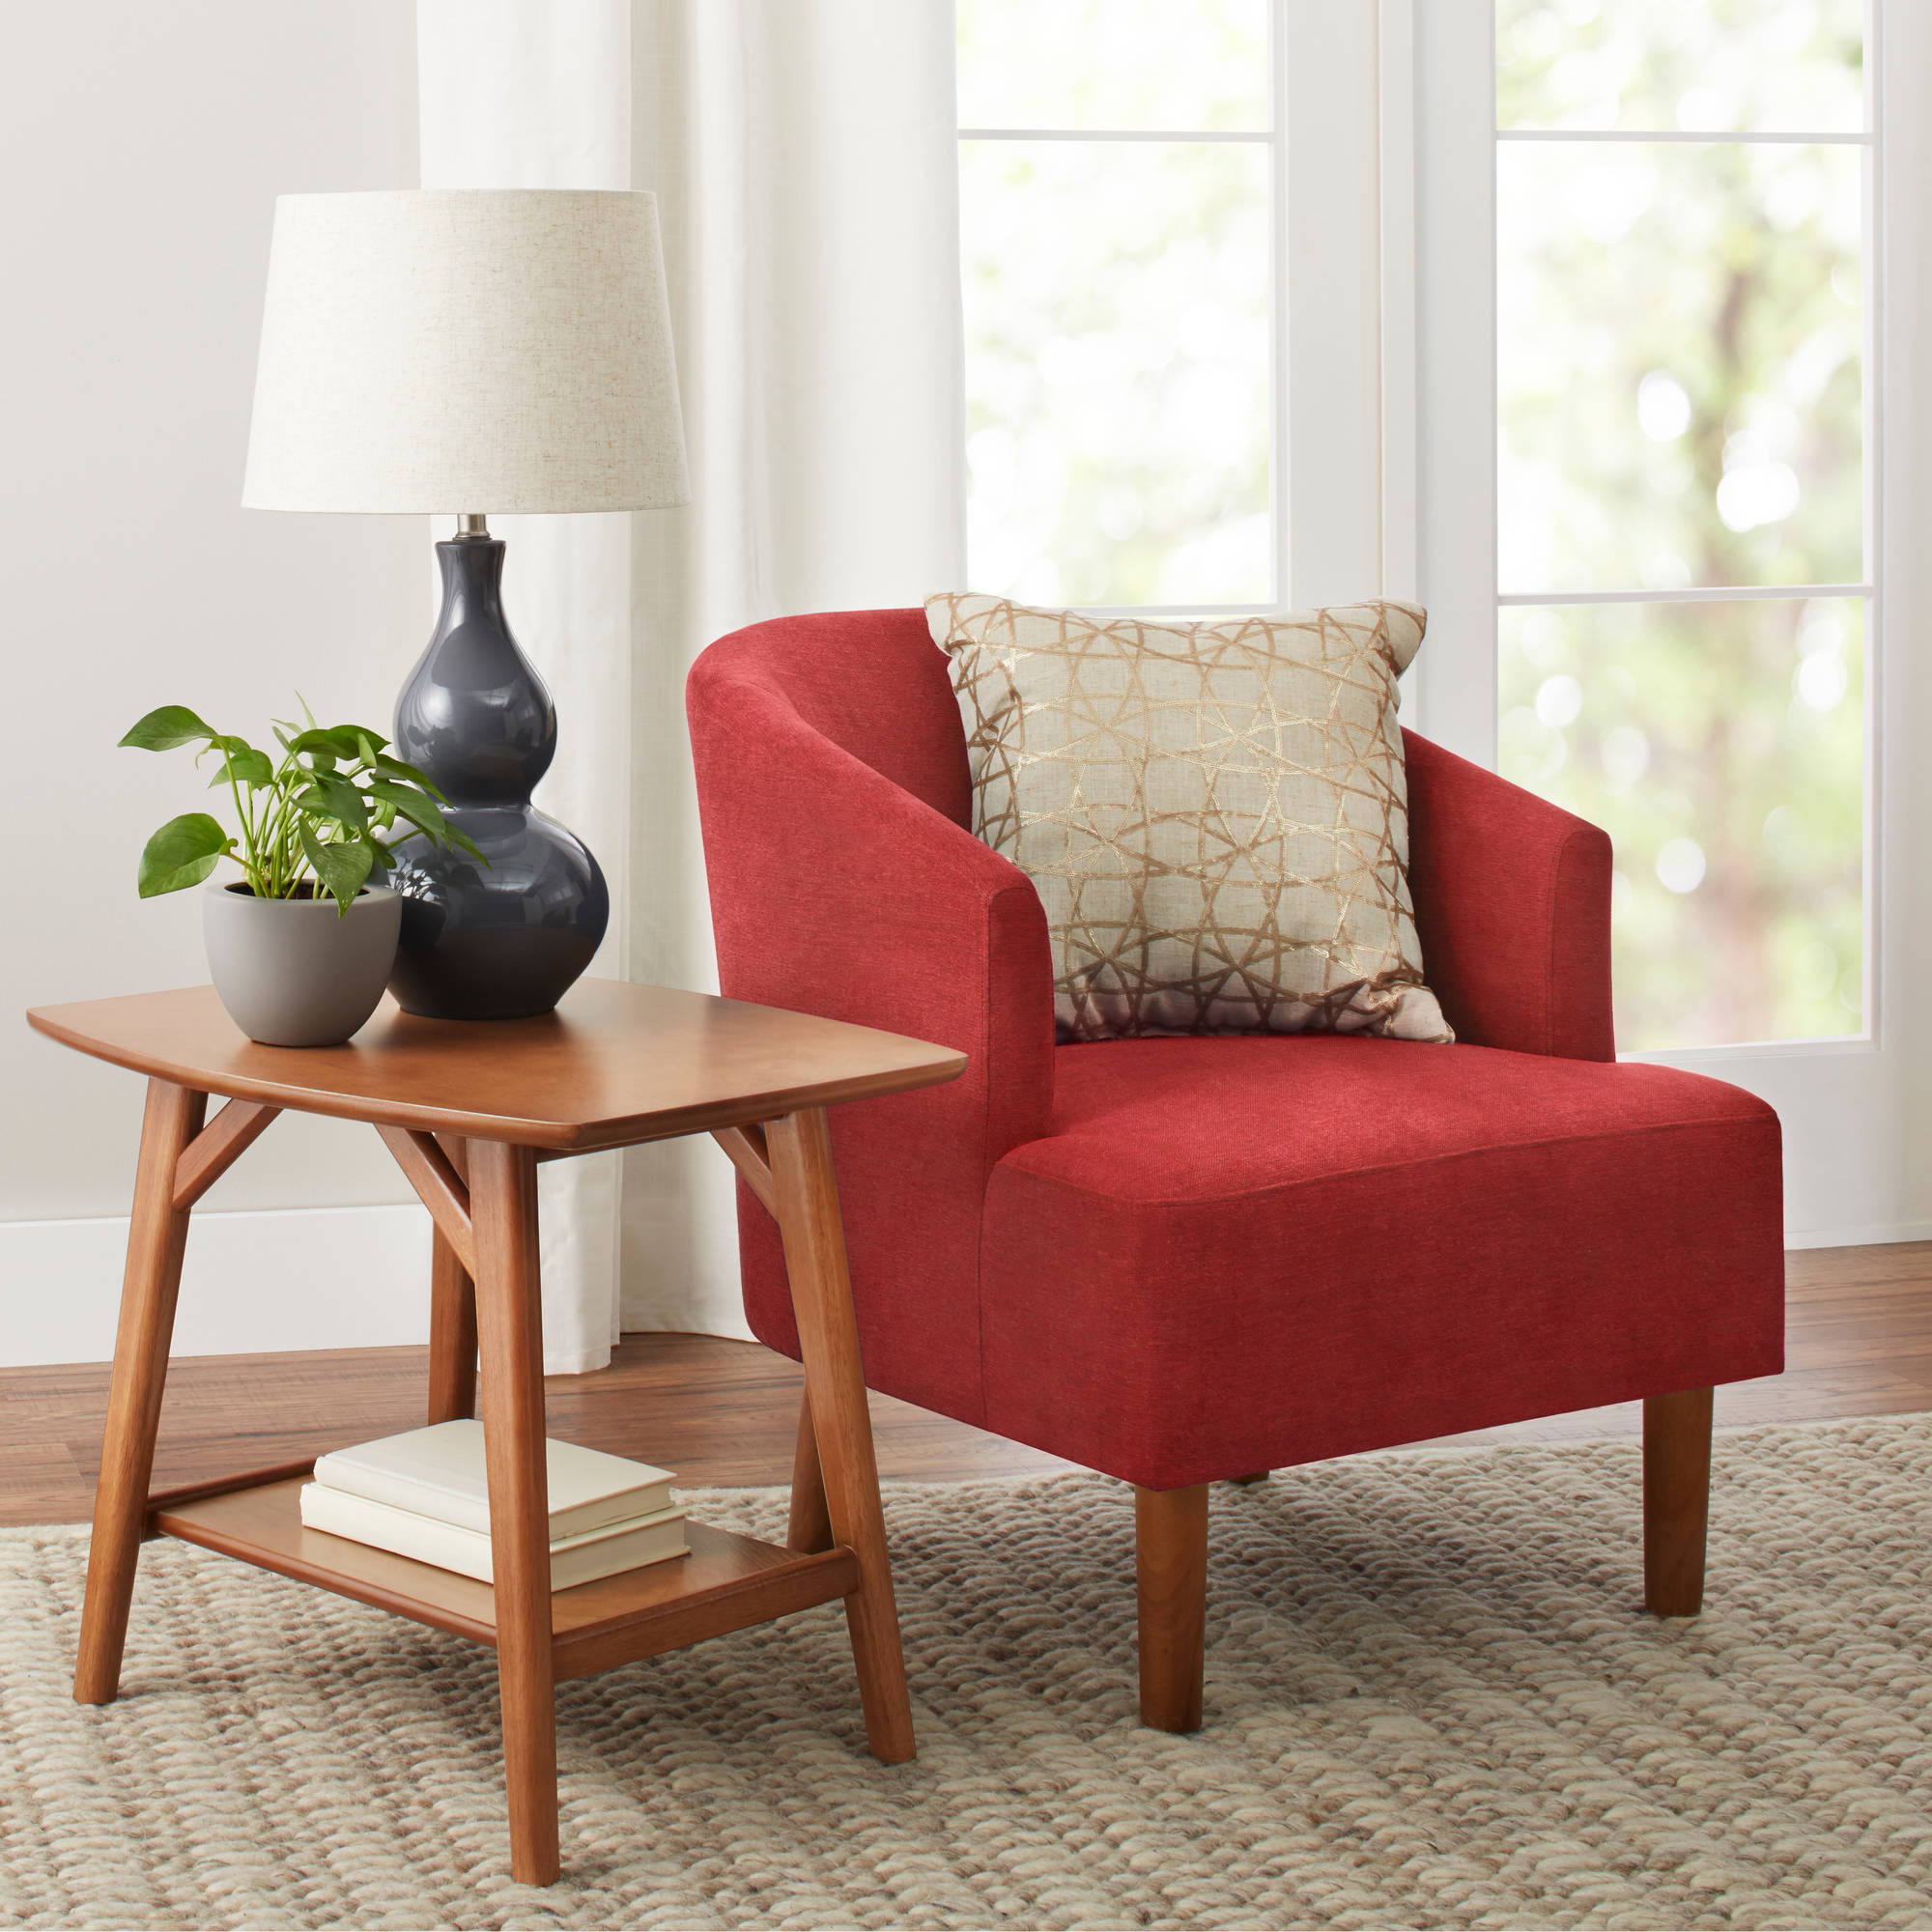 Better Homes and Gardens Reed Mid Century Modern Accent Chair, Tomato by